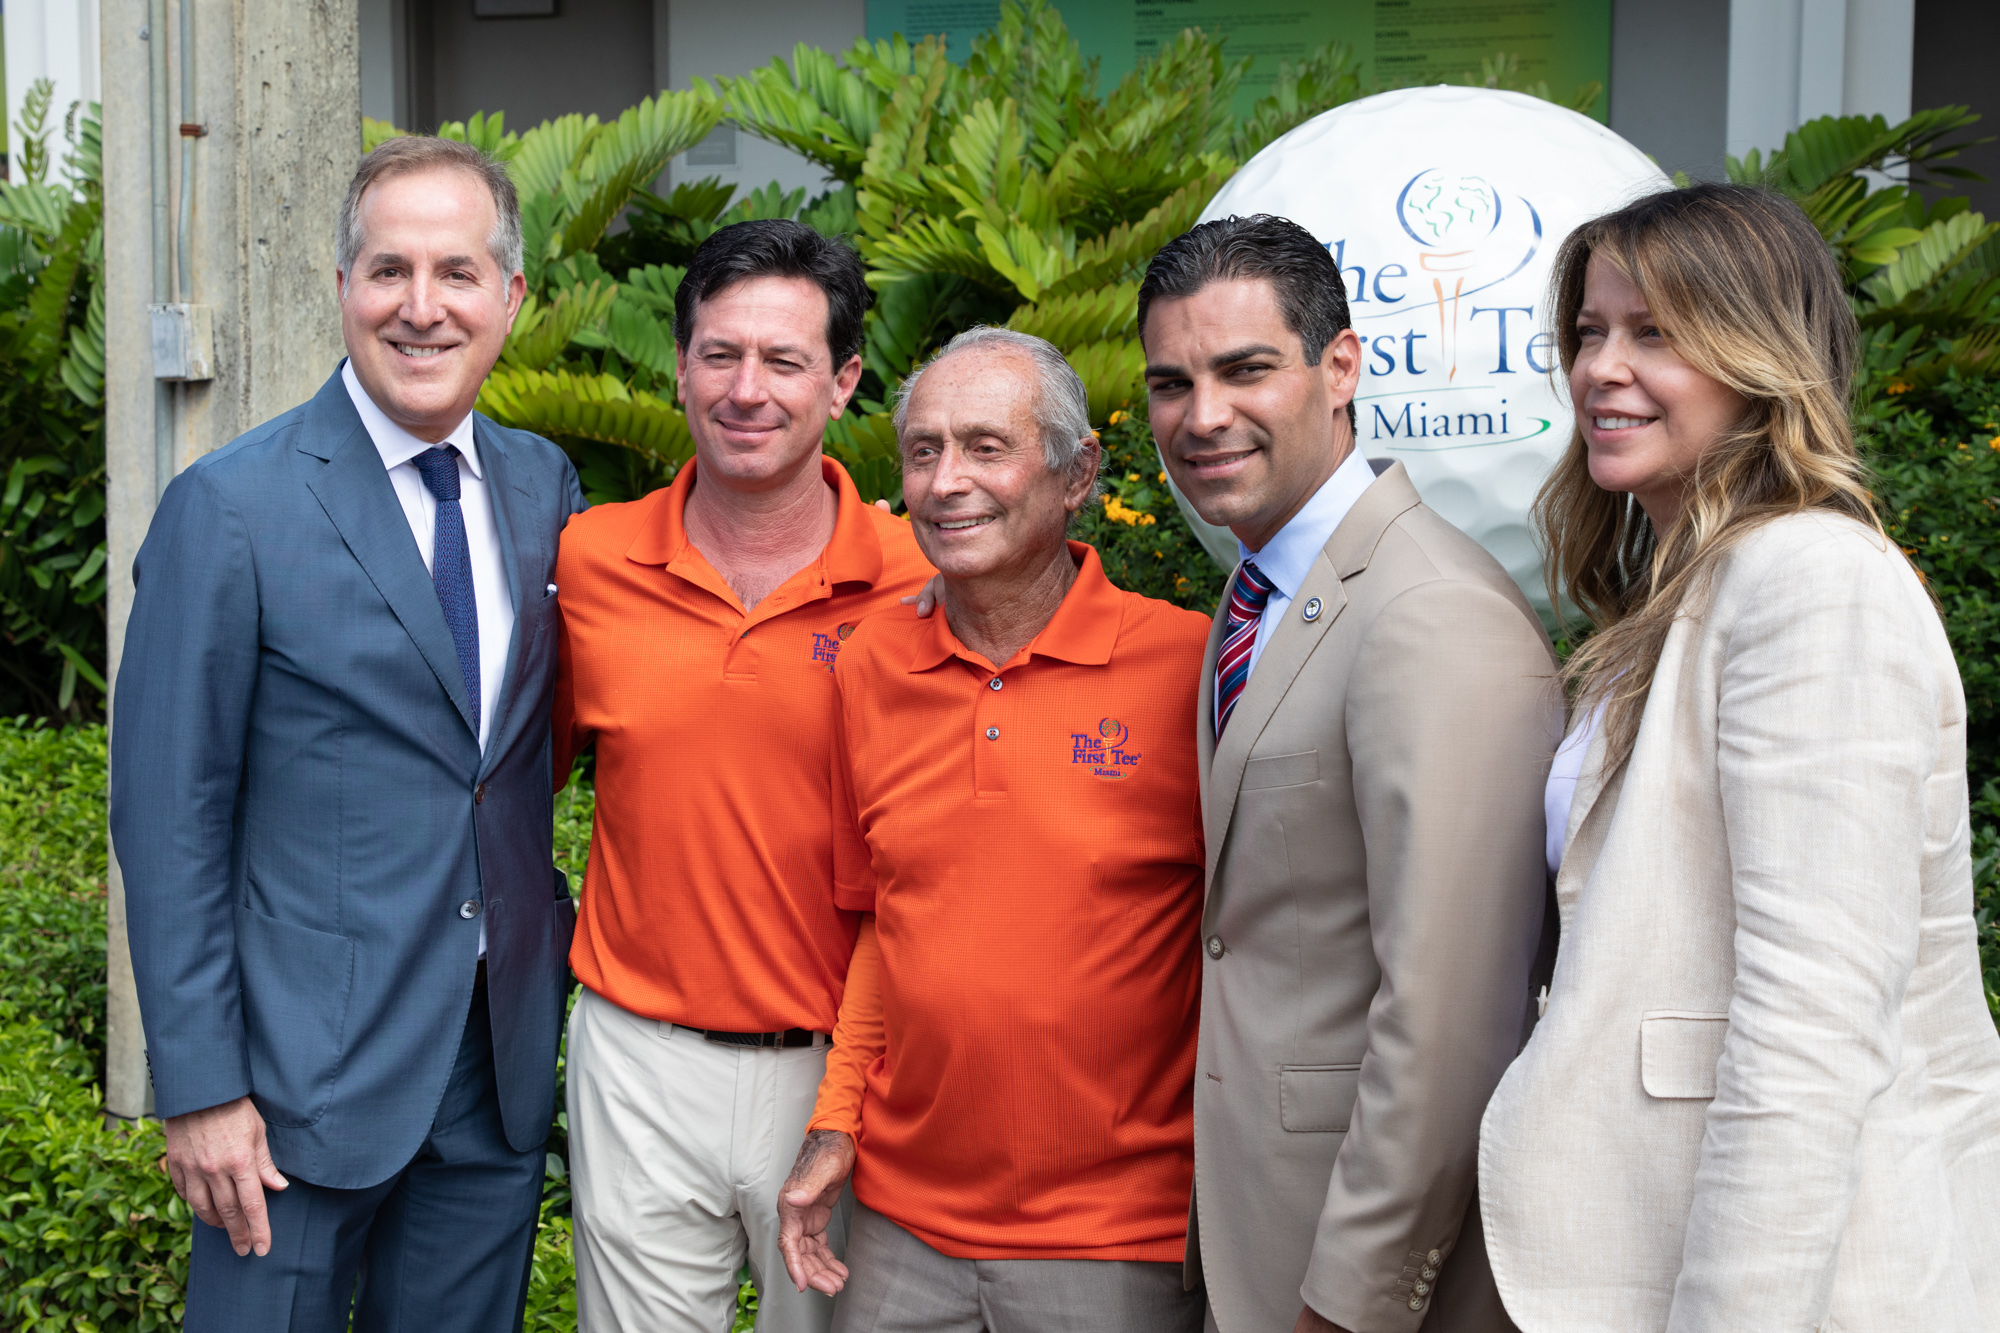 Promise Made, Promise Kept: Inter Miami CF Works with City of Miami to Preserve The First Tee Miami Program